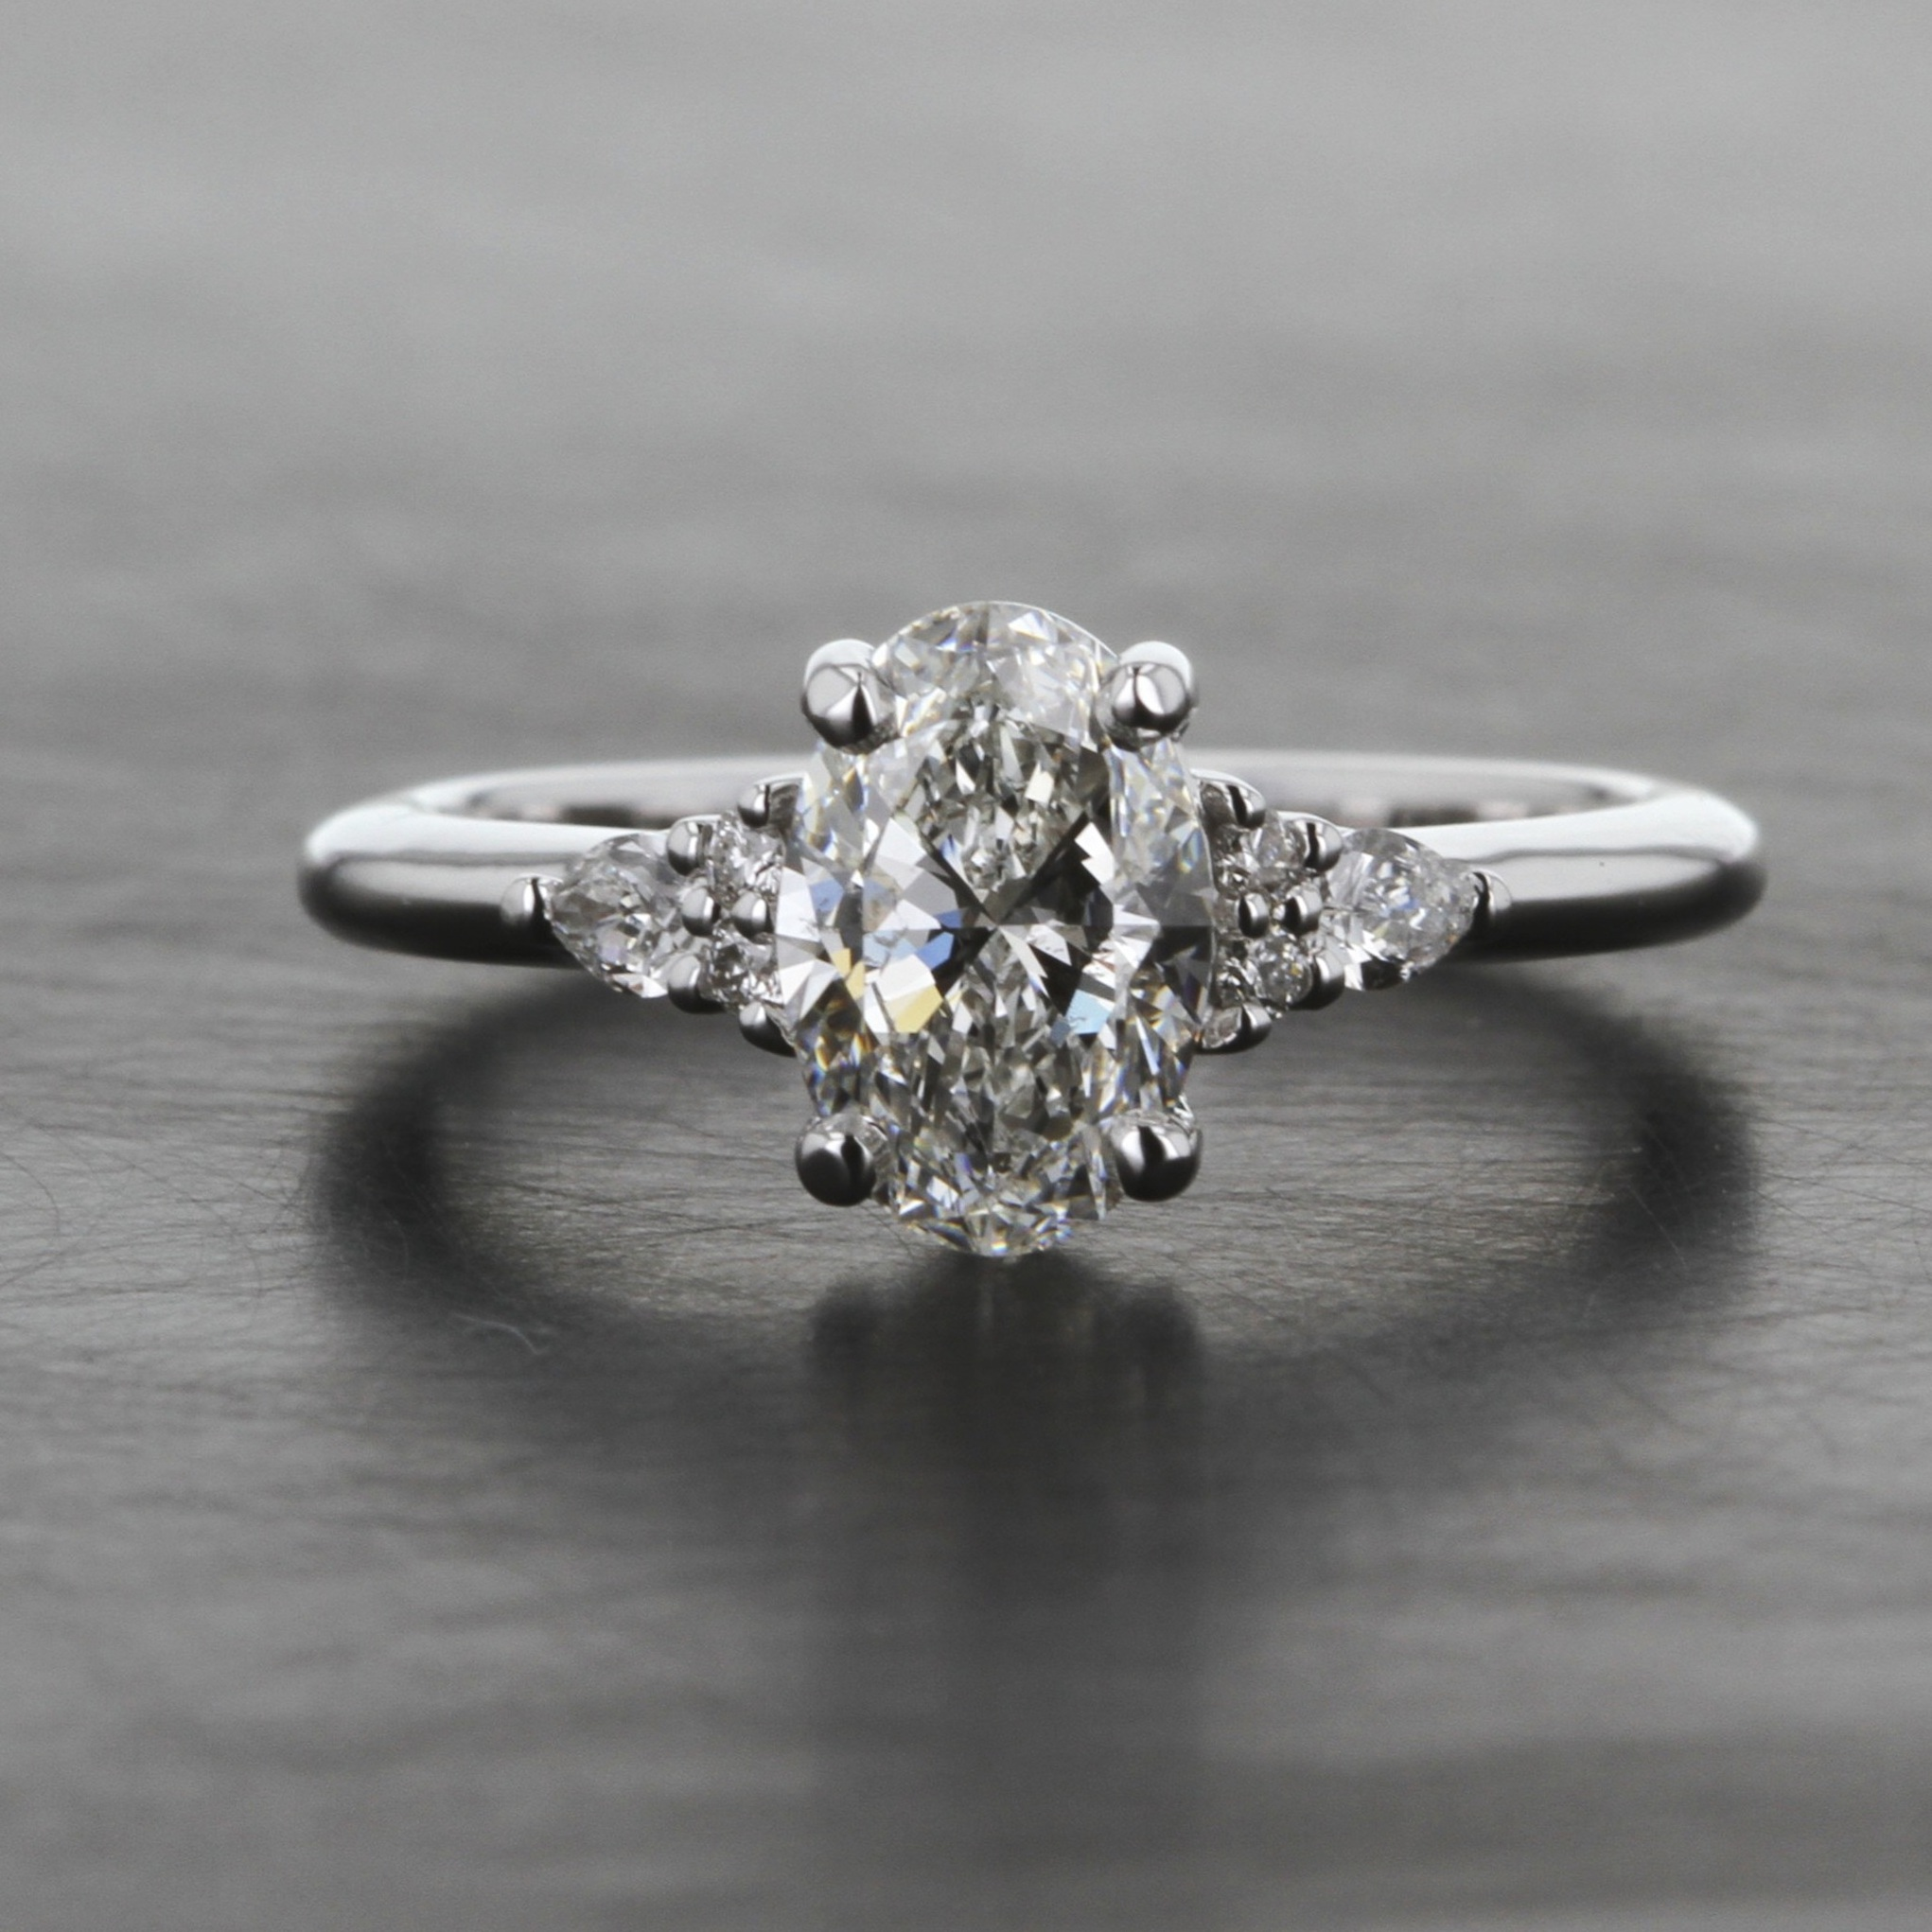 white-gold-oval-diamond-engagement-ring-custom-pear-side-stones-dainty-band.jpg